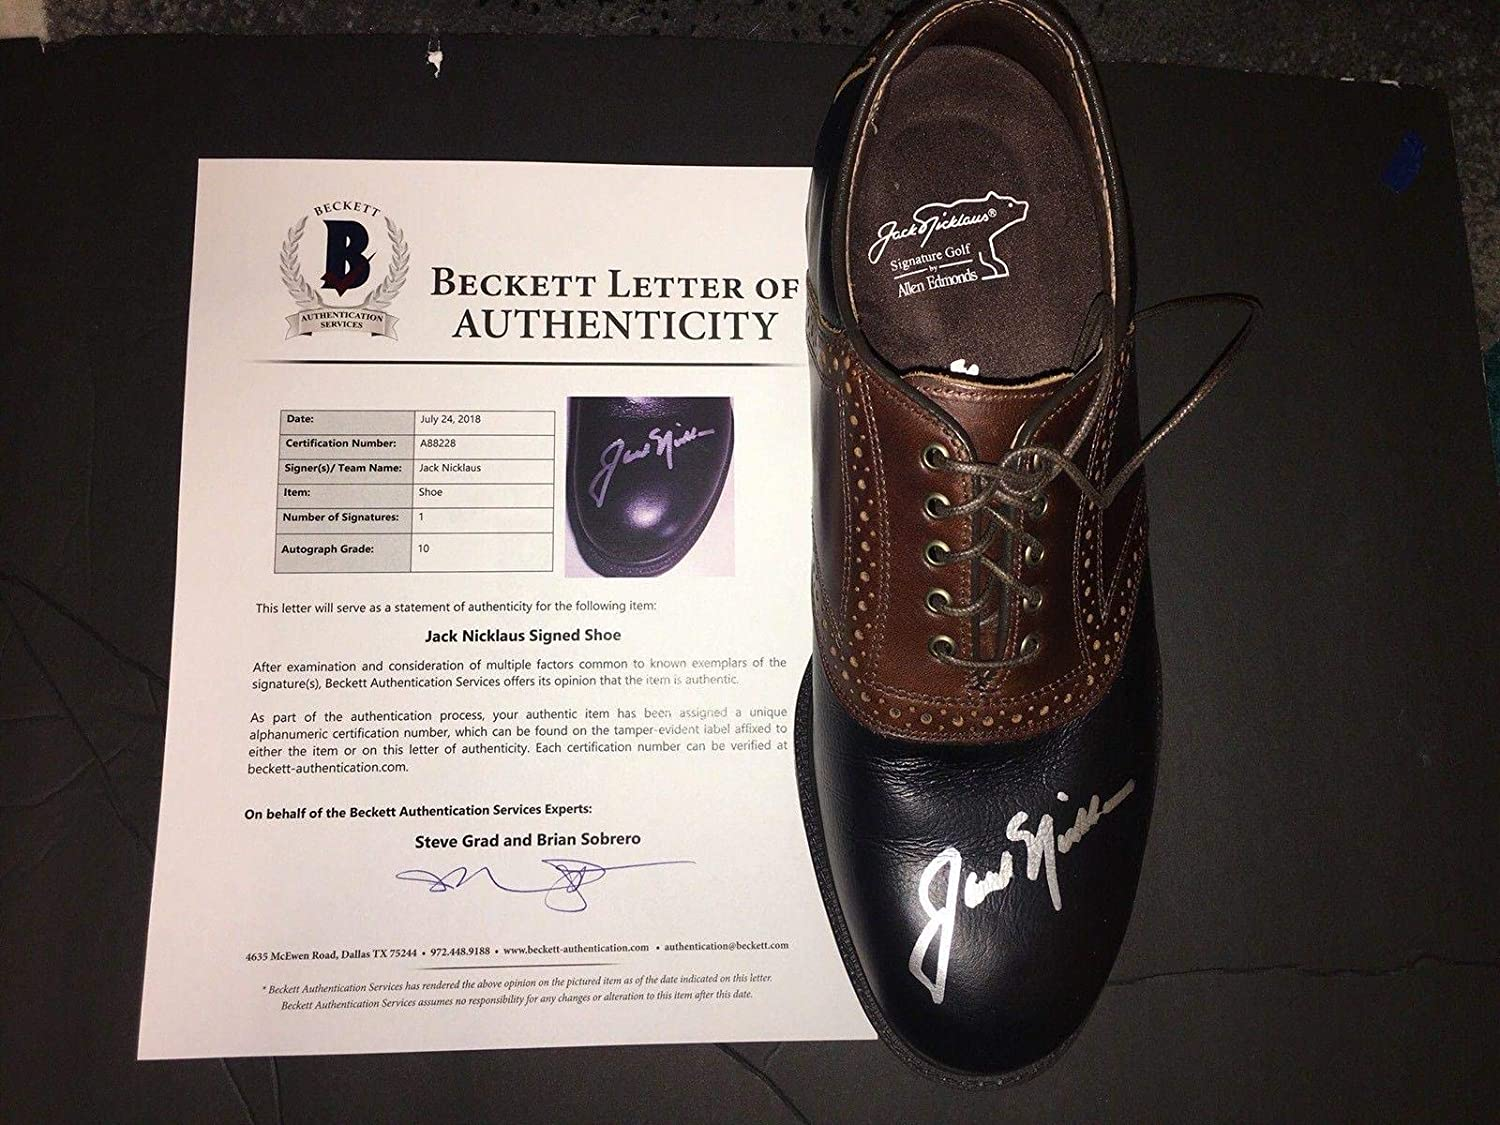 Jack Nicklaus Signed Official Golden Bear Shoe 6x Masters Champ Beckett - Beckett Authentication - Autographed Golf Shoes